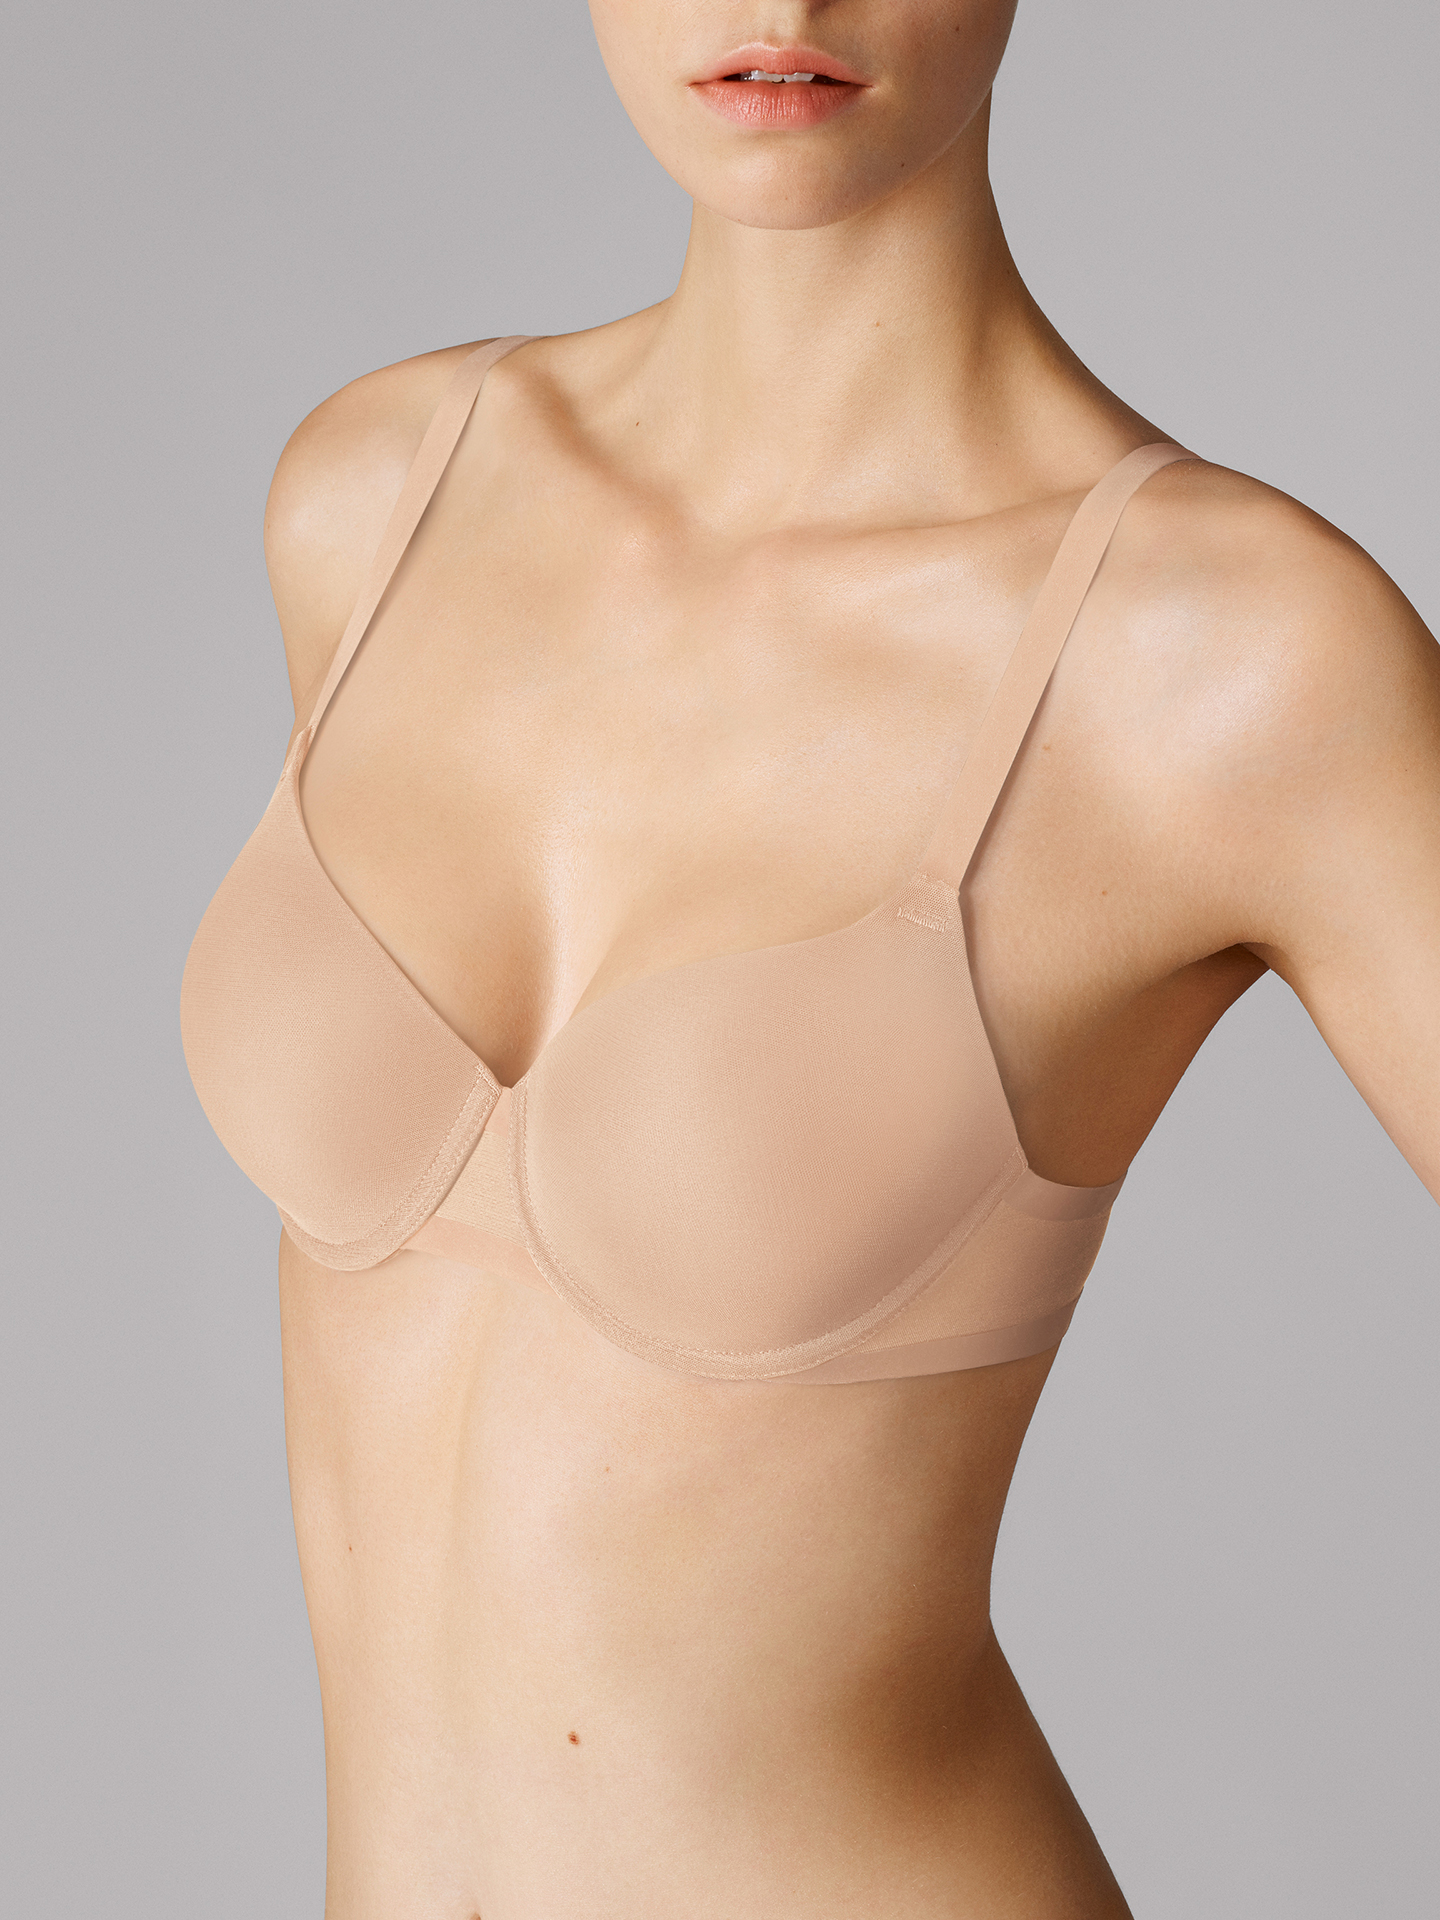 Tulle Cup Bra - 4545 - 75C